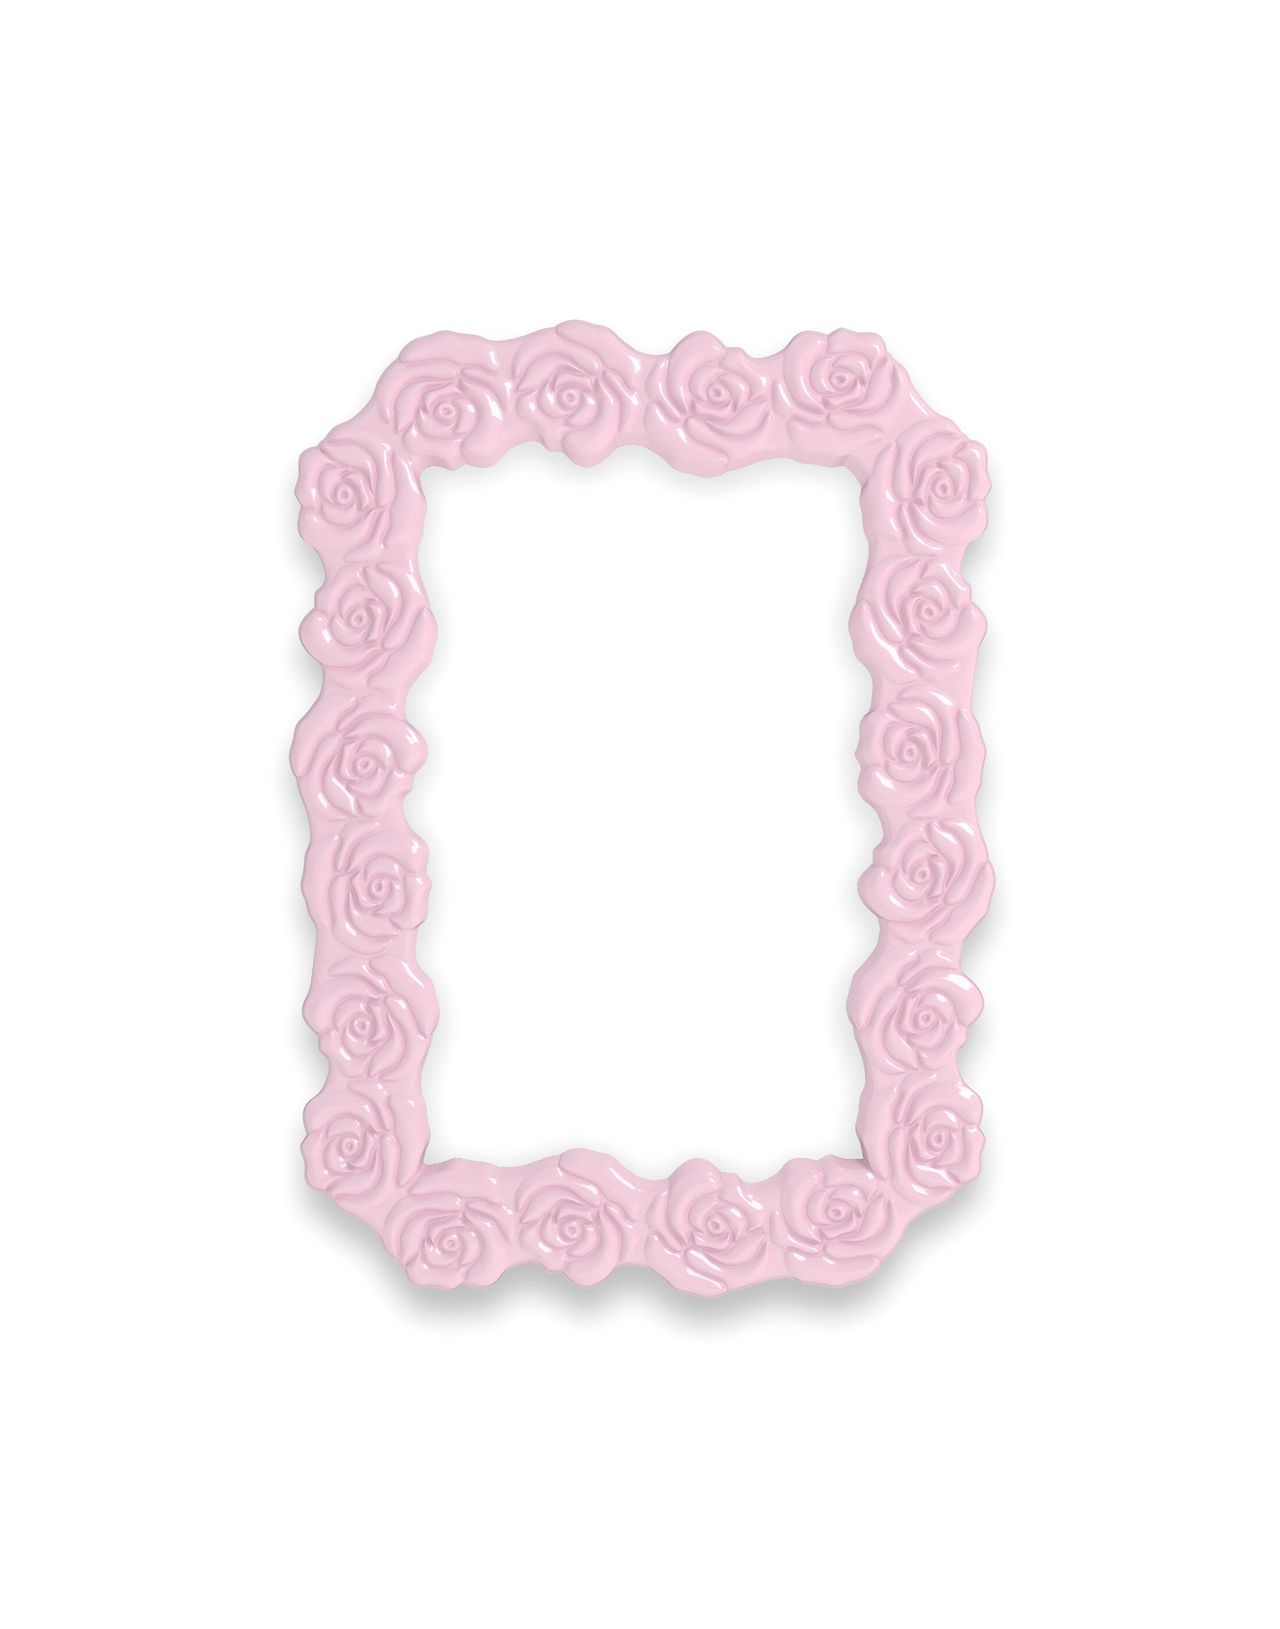 Frame Pink Lilac Plastic Stockphoto Product Photography Blogphotography Printshop Roses Photoframe